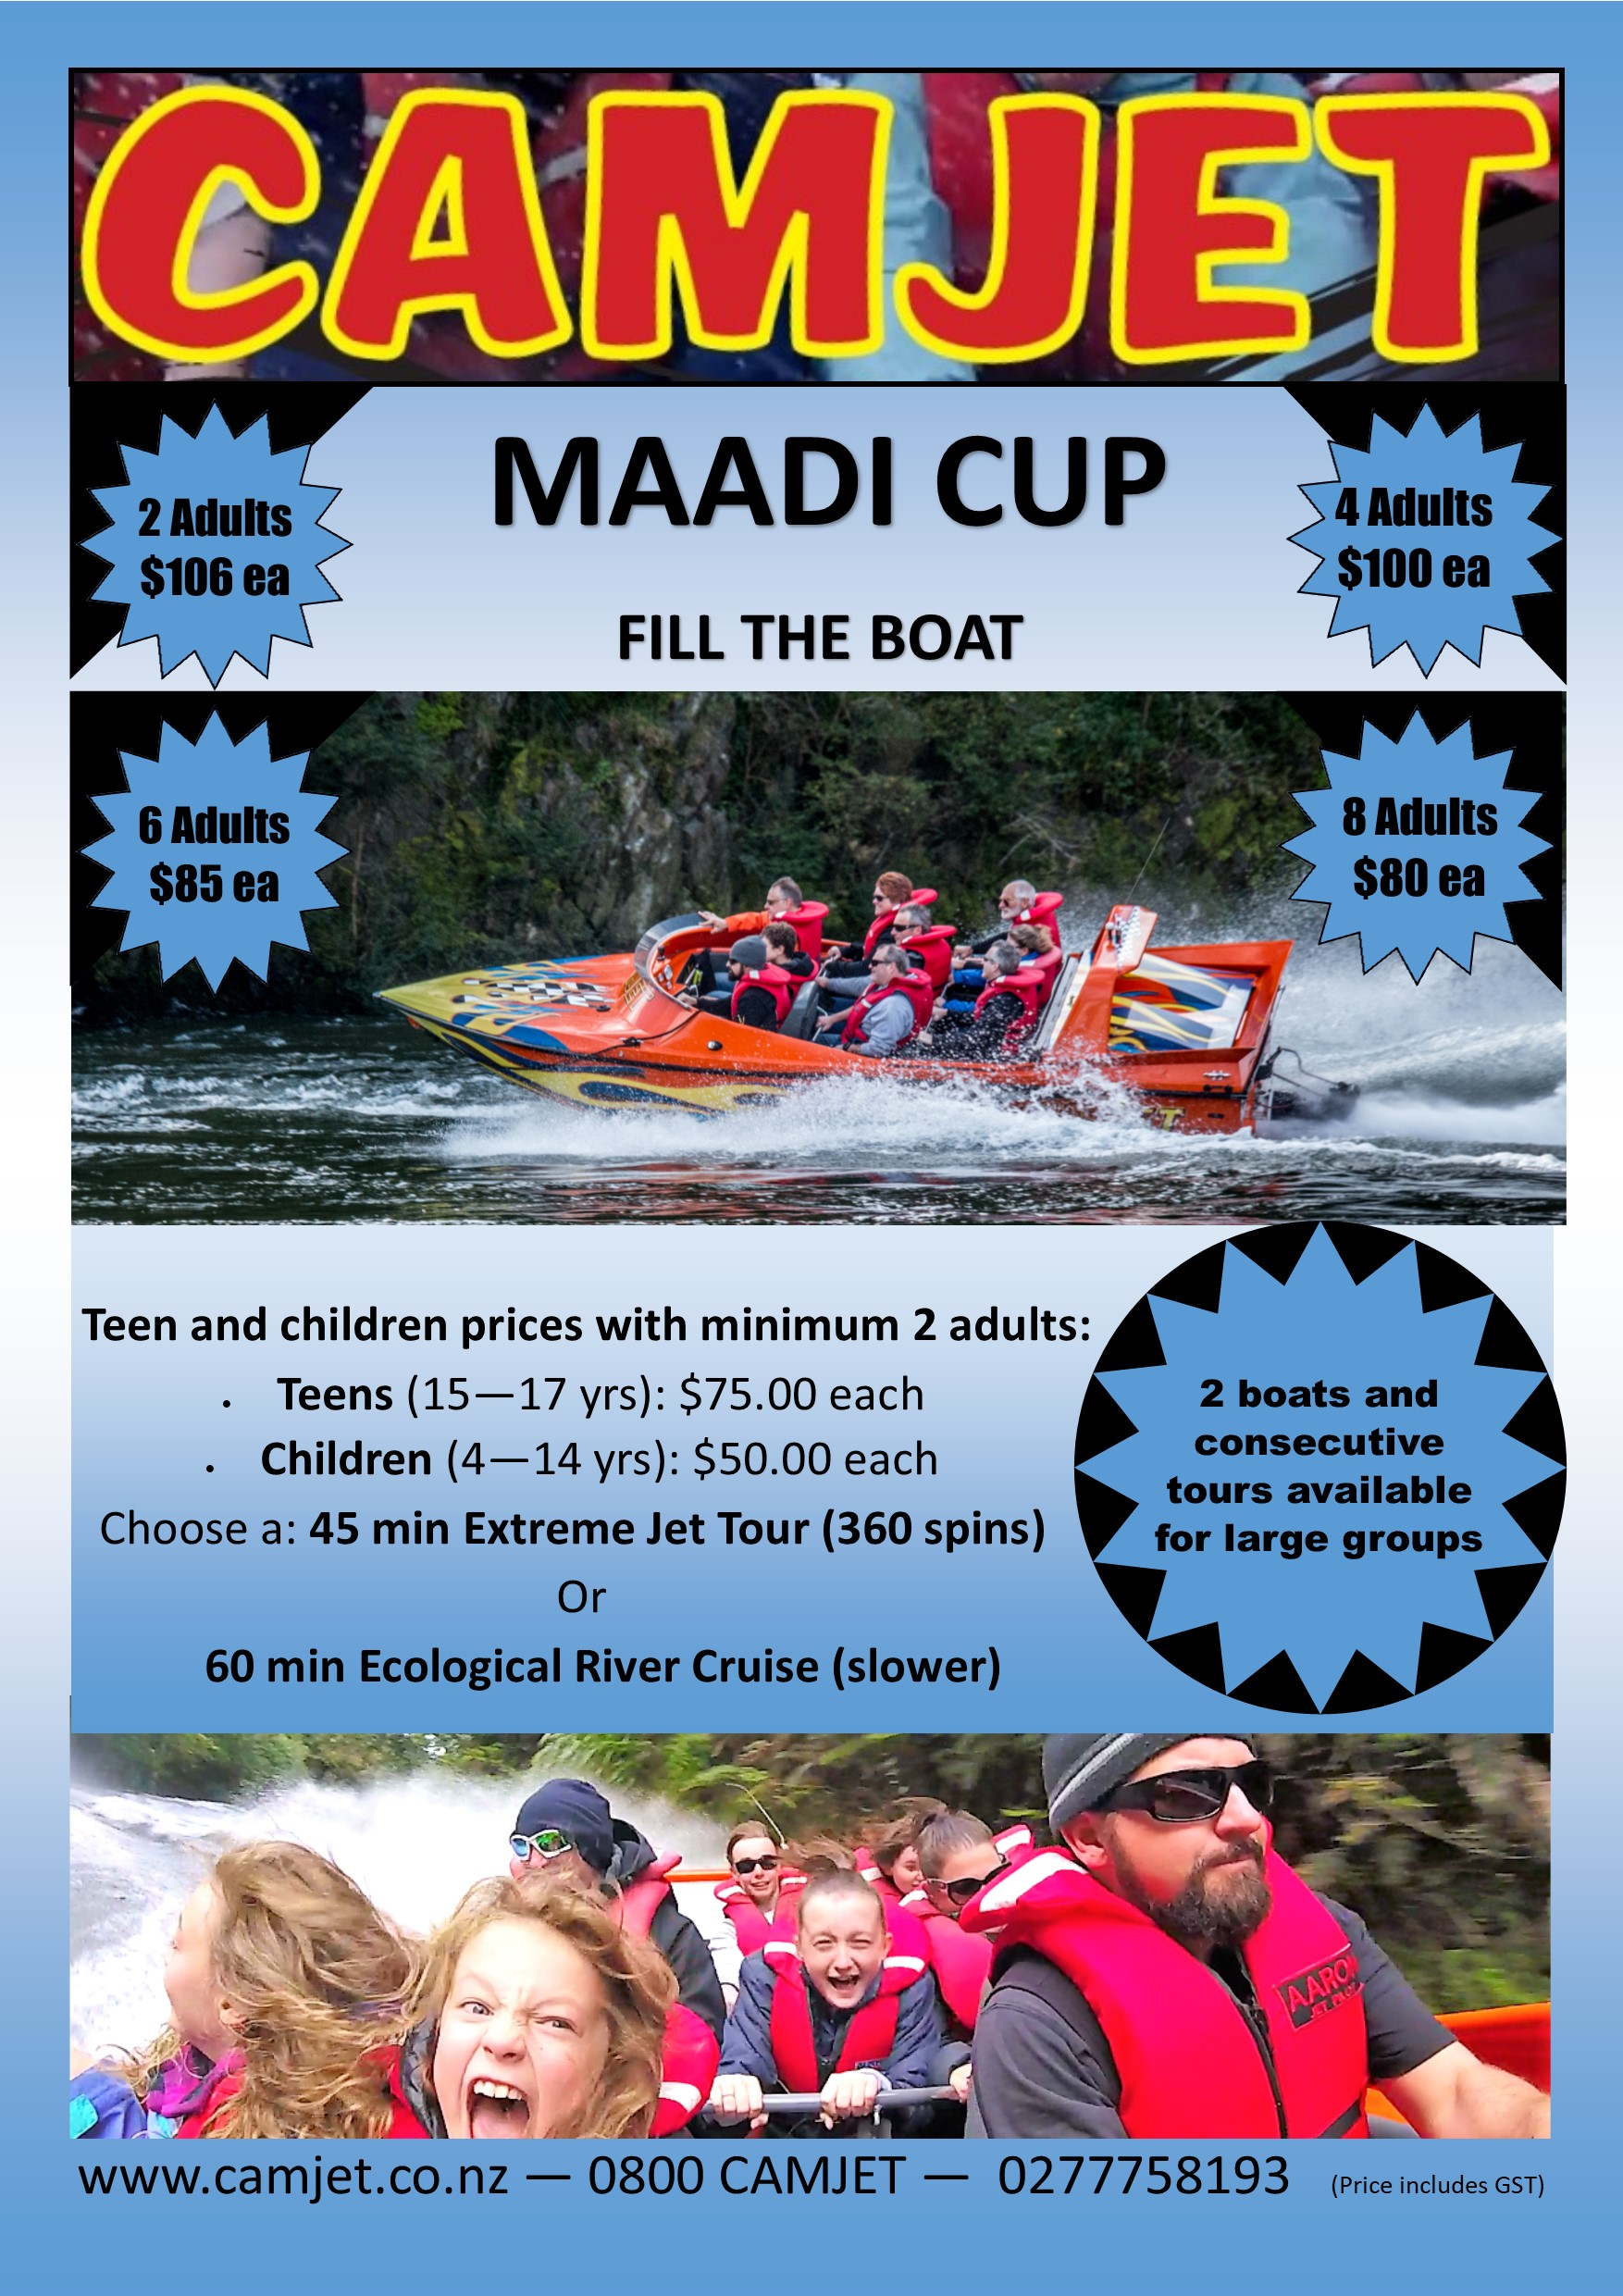 Maddi cup Camjet Fill the boat special